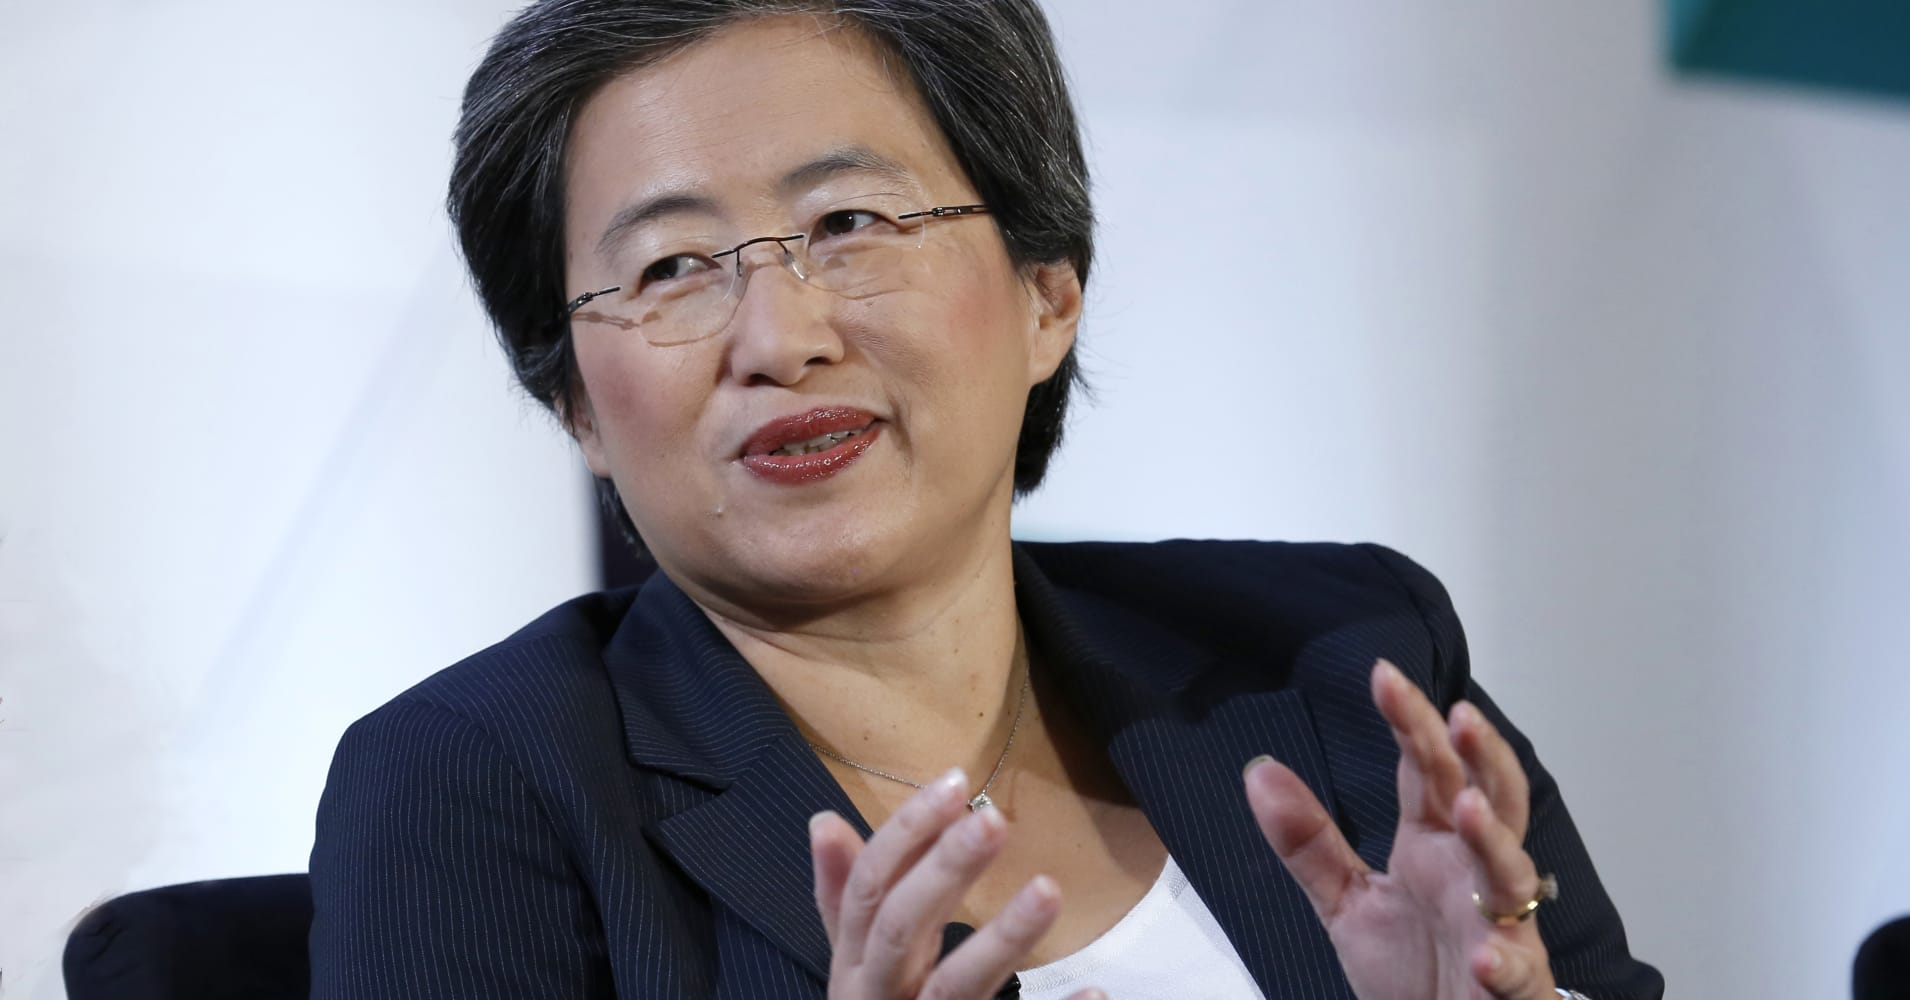 AMD shares rise after chipmaker announces new business from Amazon's cloud unit